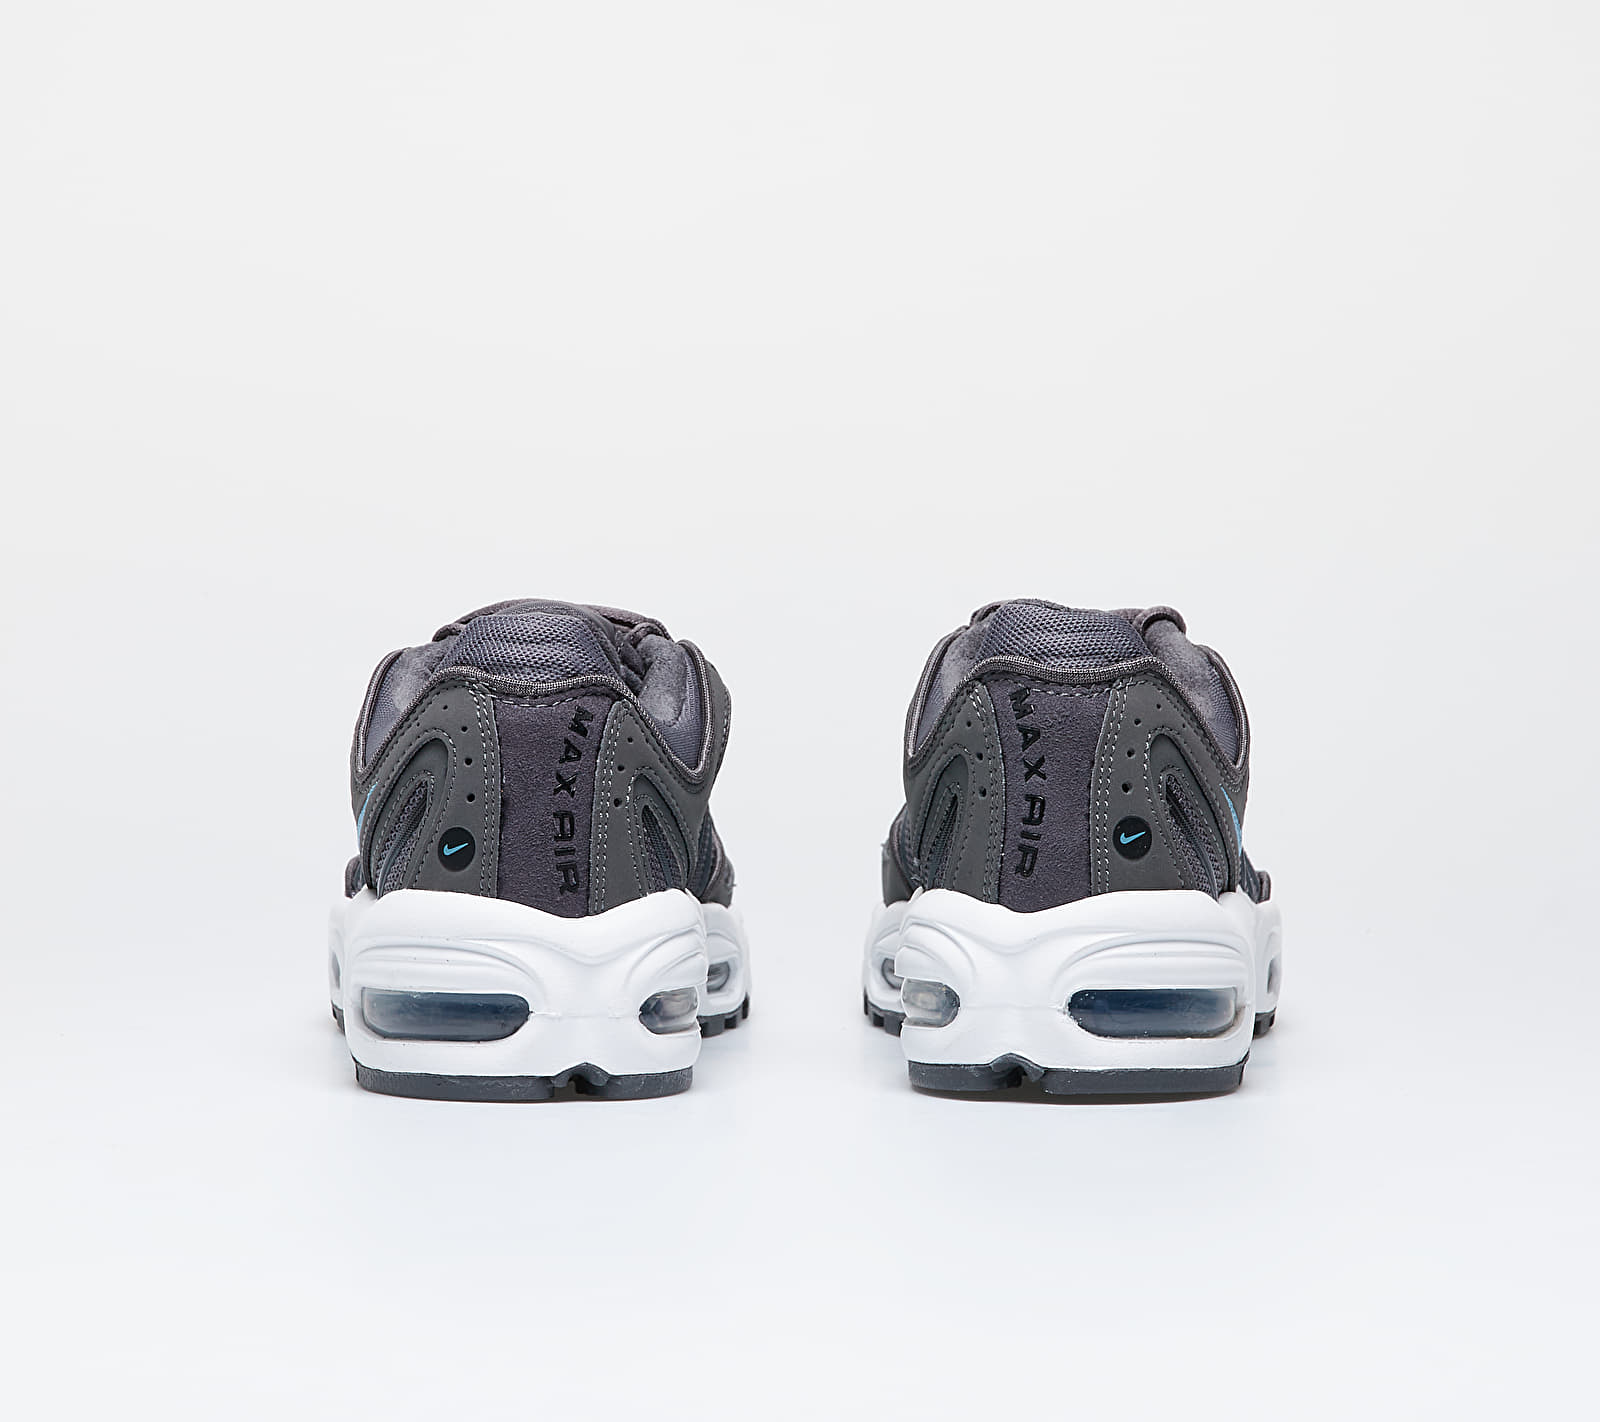 Nike Air Max Tailwind IV Iron Grey/ Cerulean-Black-White, Gray